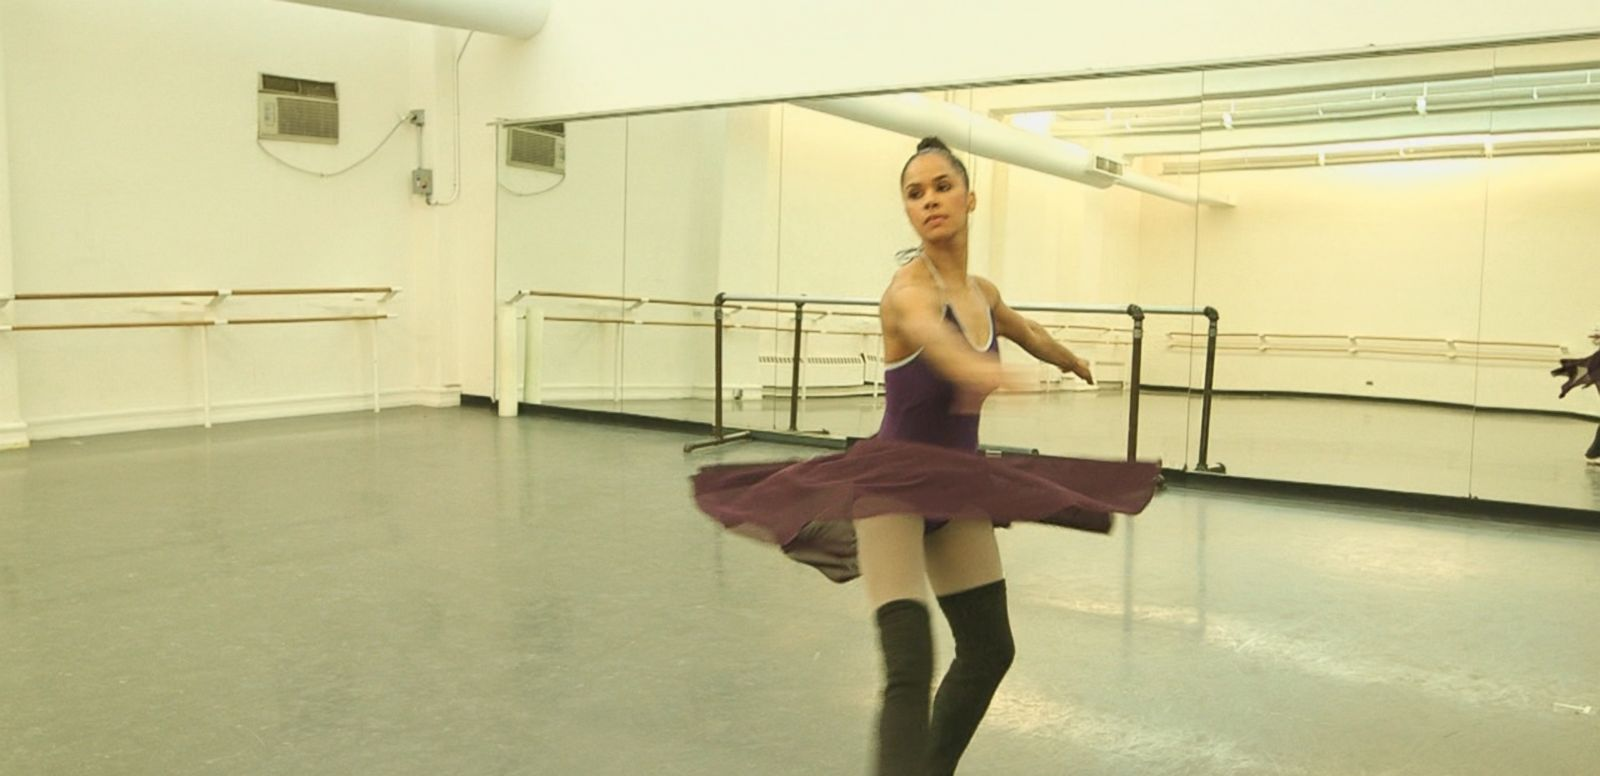 VIDEO: Misty Copeland Named Principal Dancer for American Ballet Theater